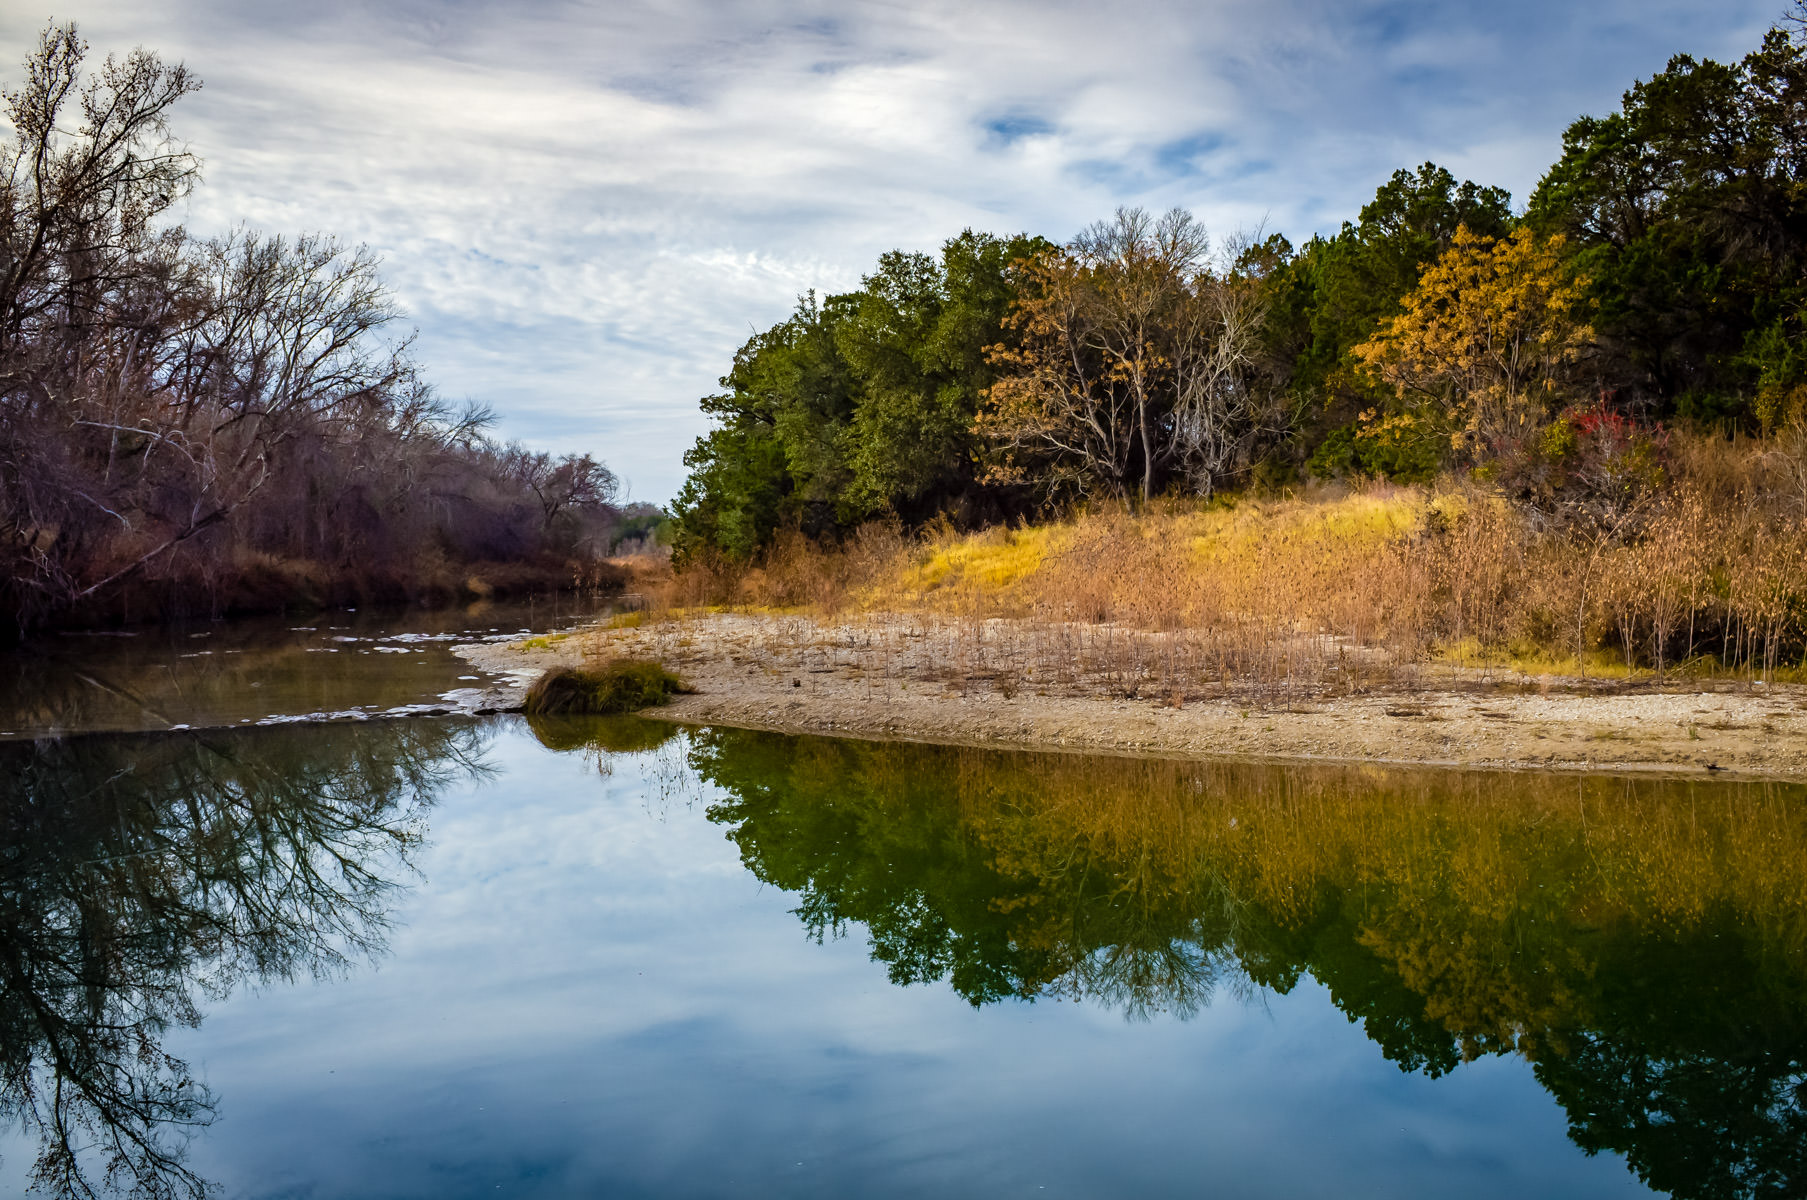 The Paluxy River at Dinosaur Valley State Park near Glen Rose, Texas.